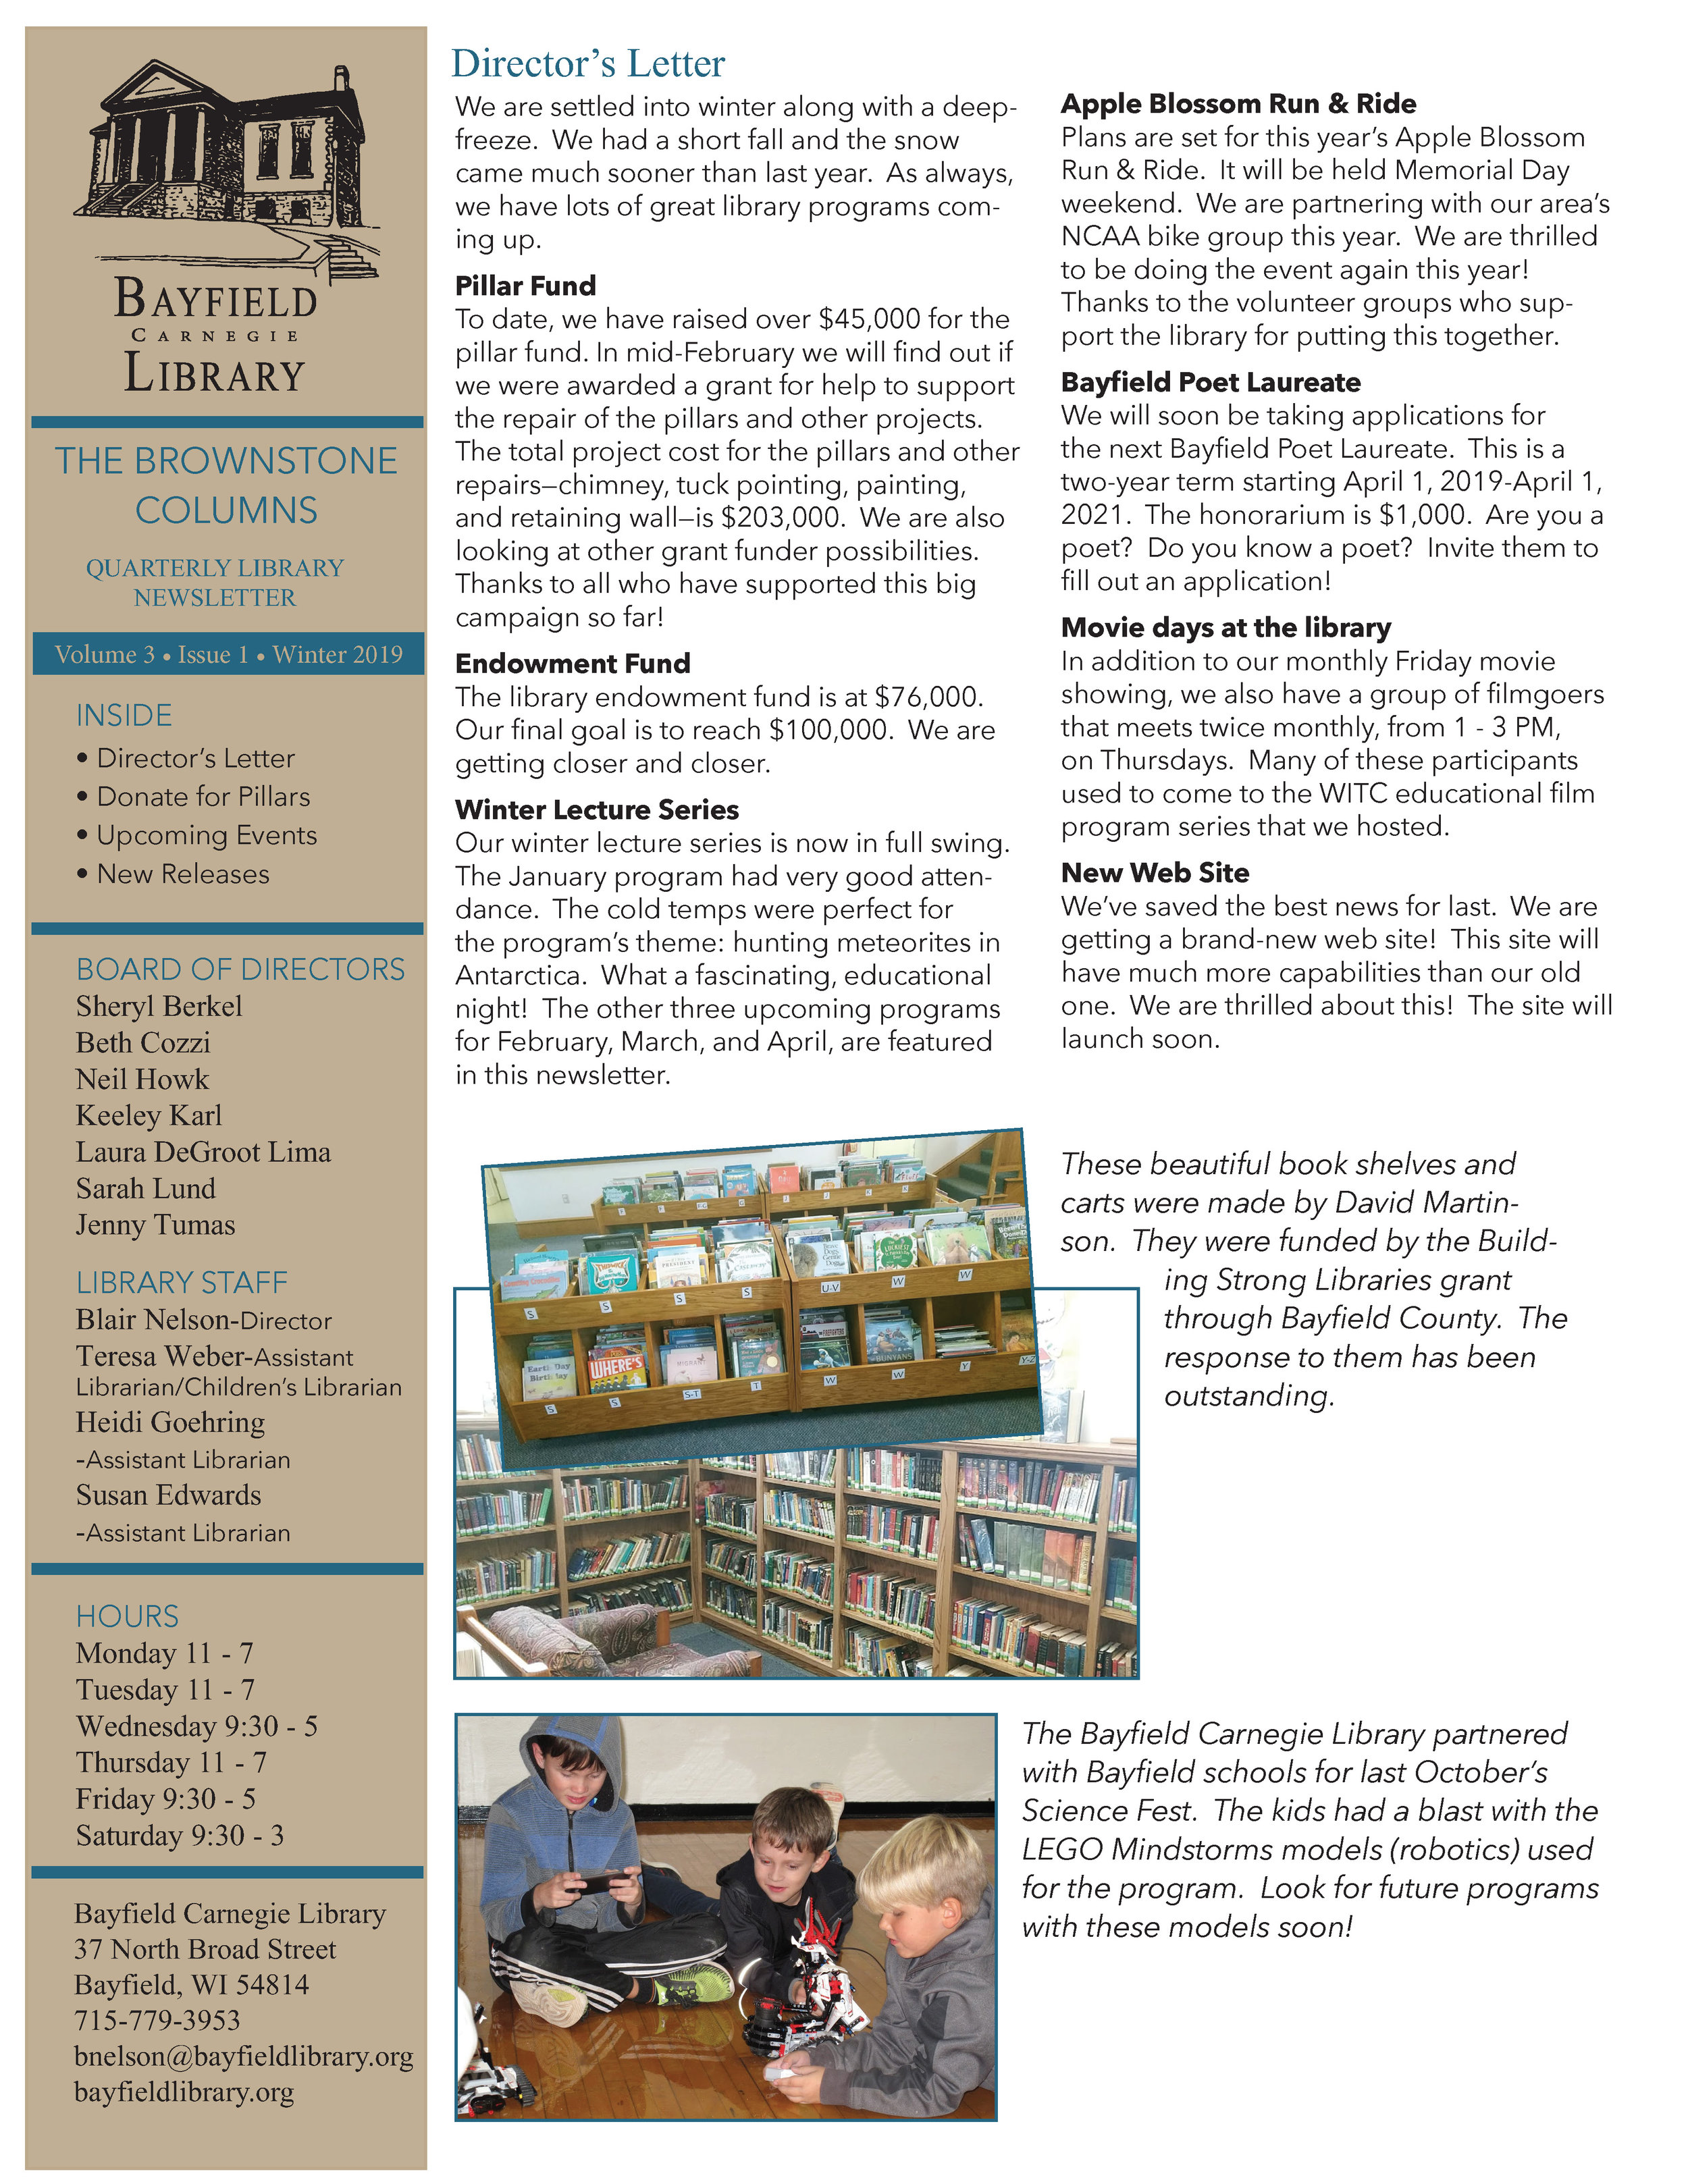 library newsletter winter 2019_2.9_Page_1.jpg